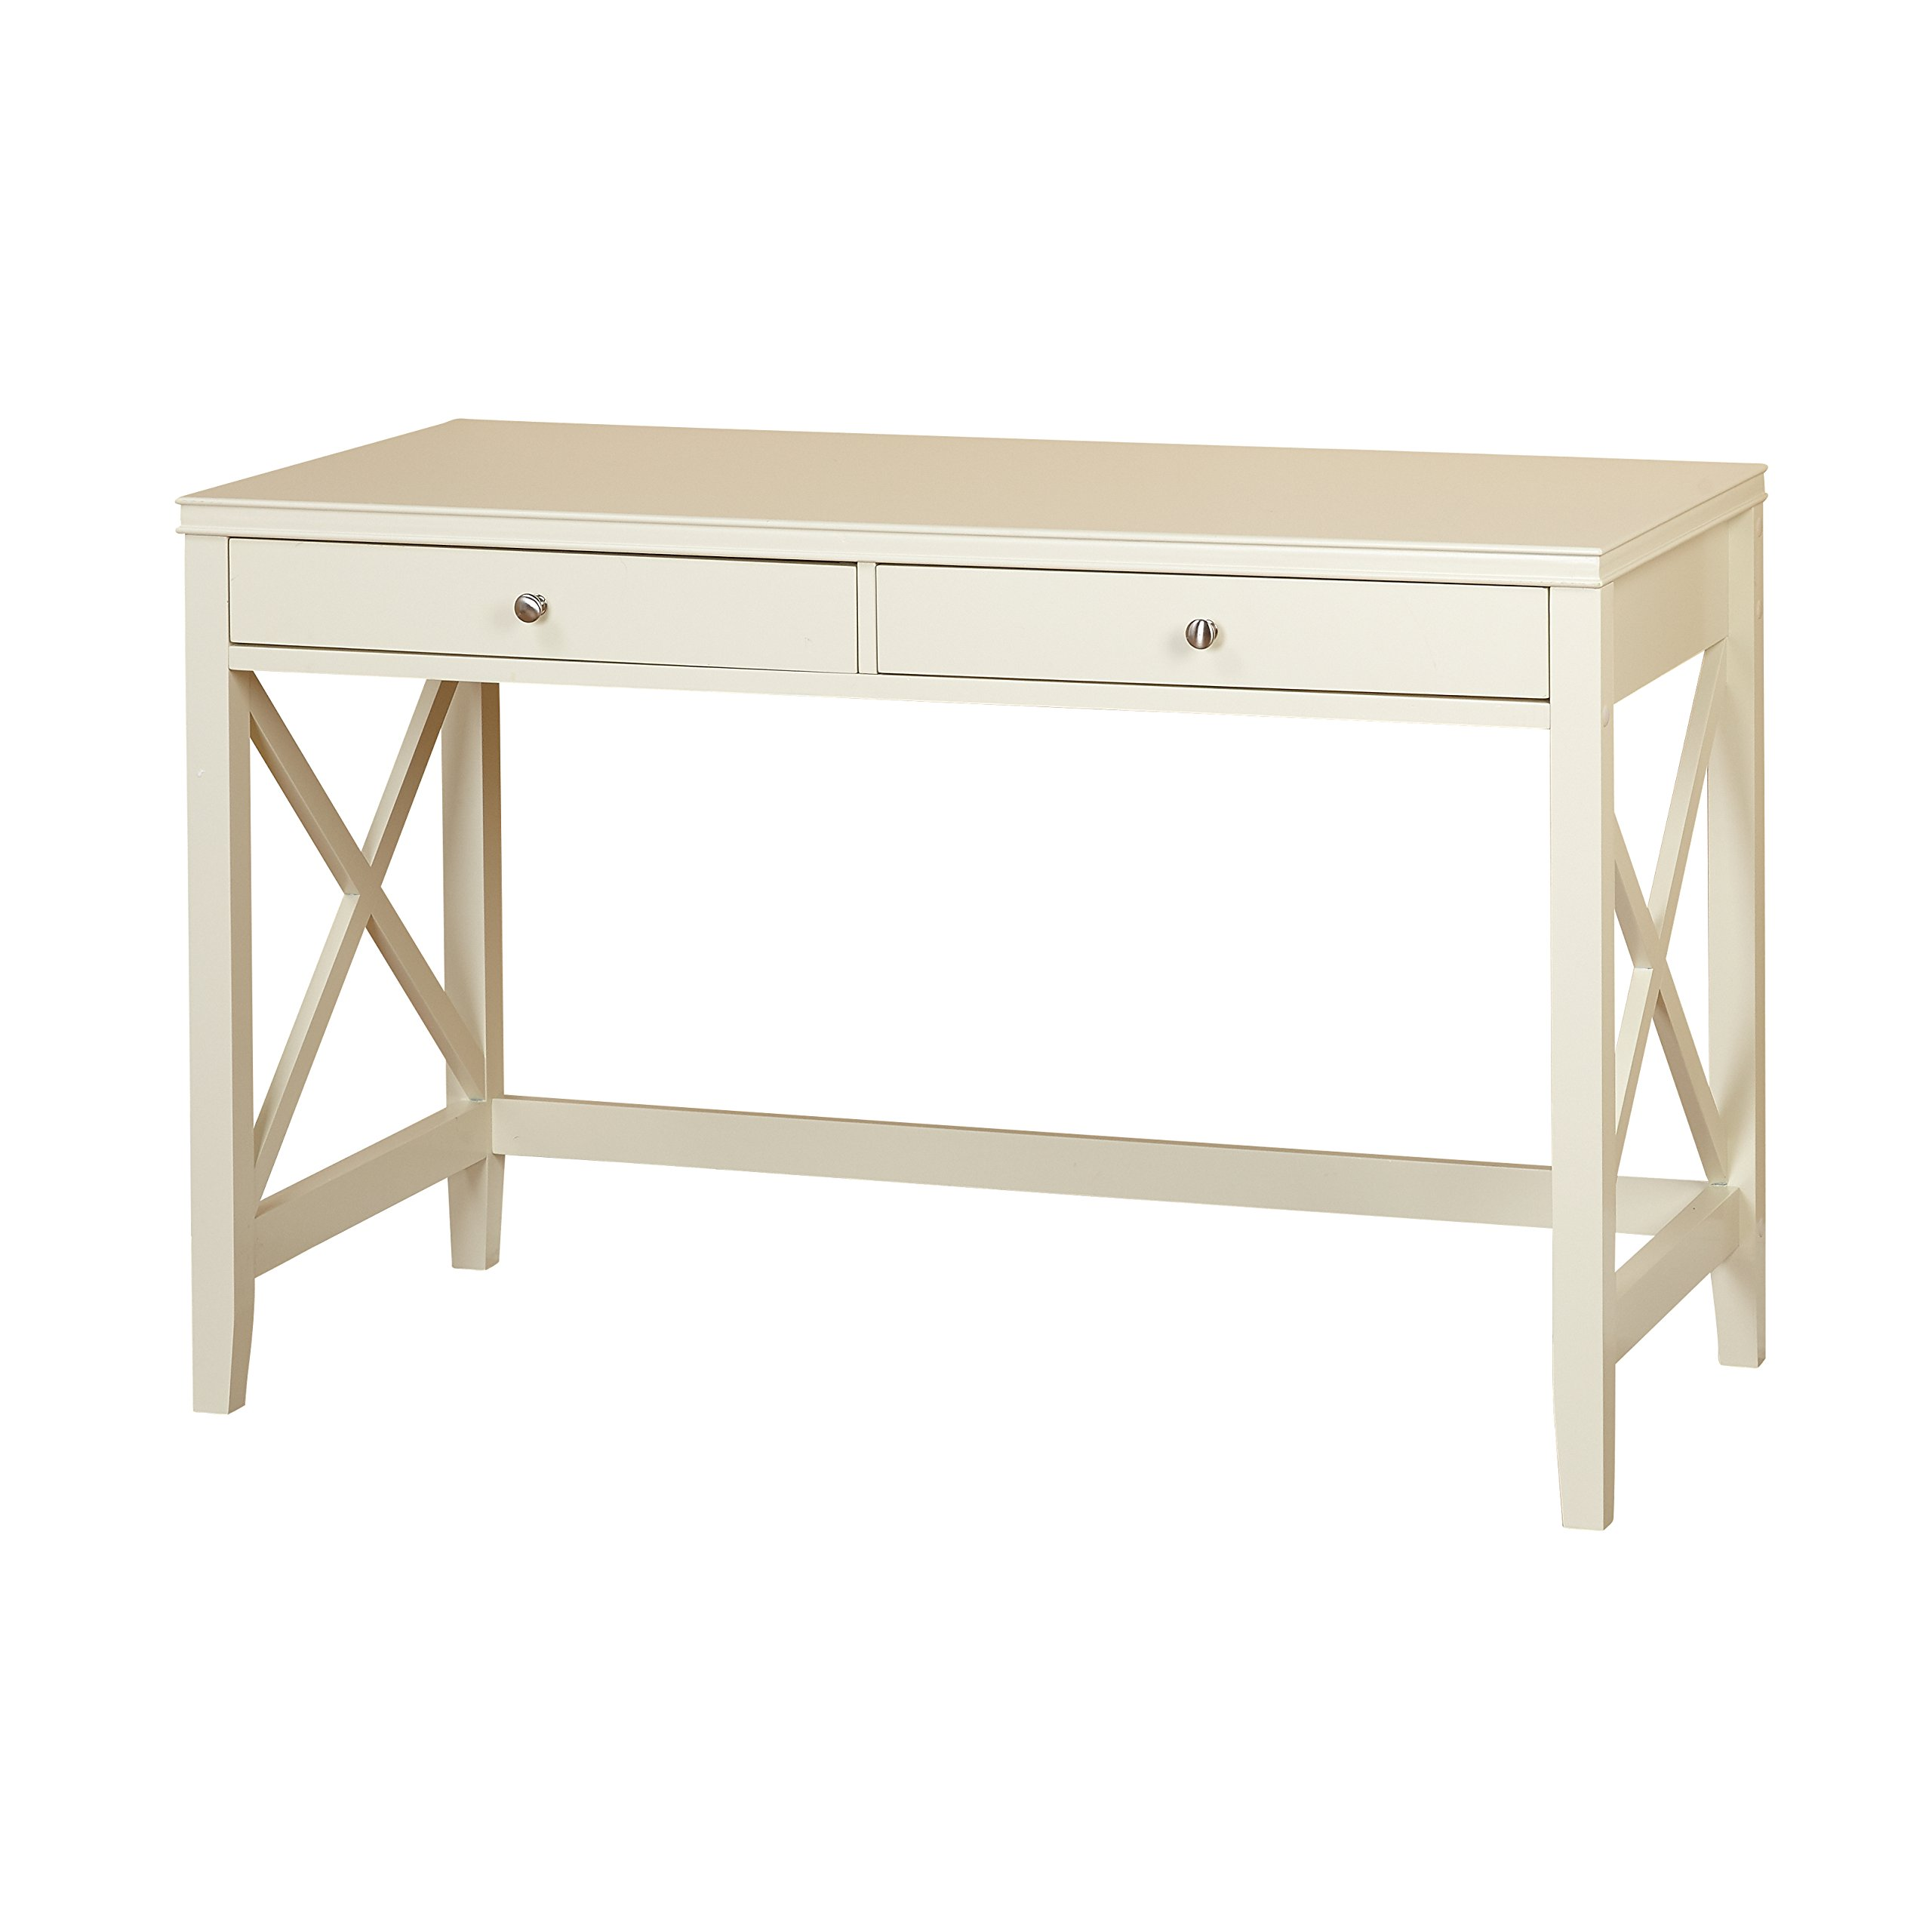 Target Marketing Systems 37907AWH Anderson X Wooden Desk by Target Marketing Systems